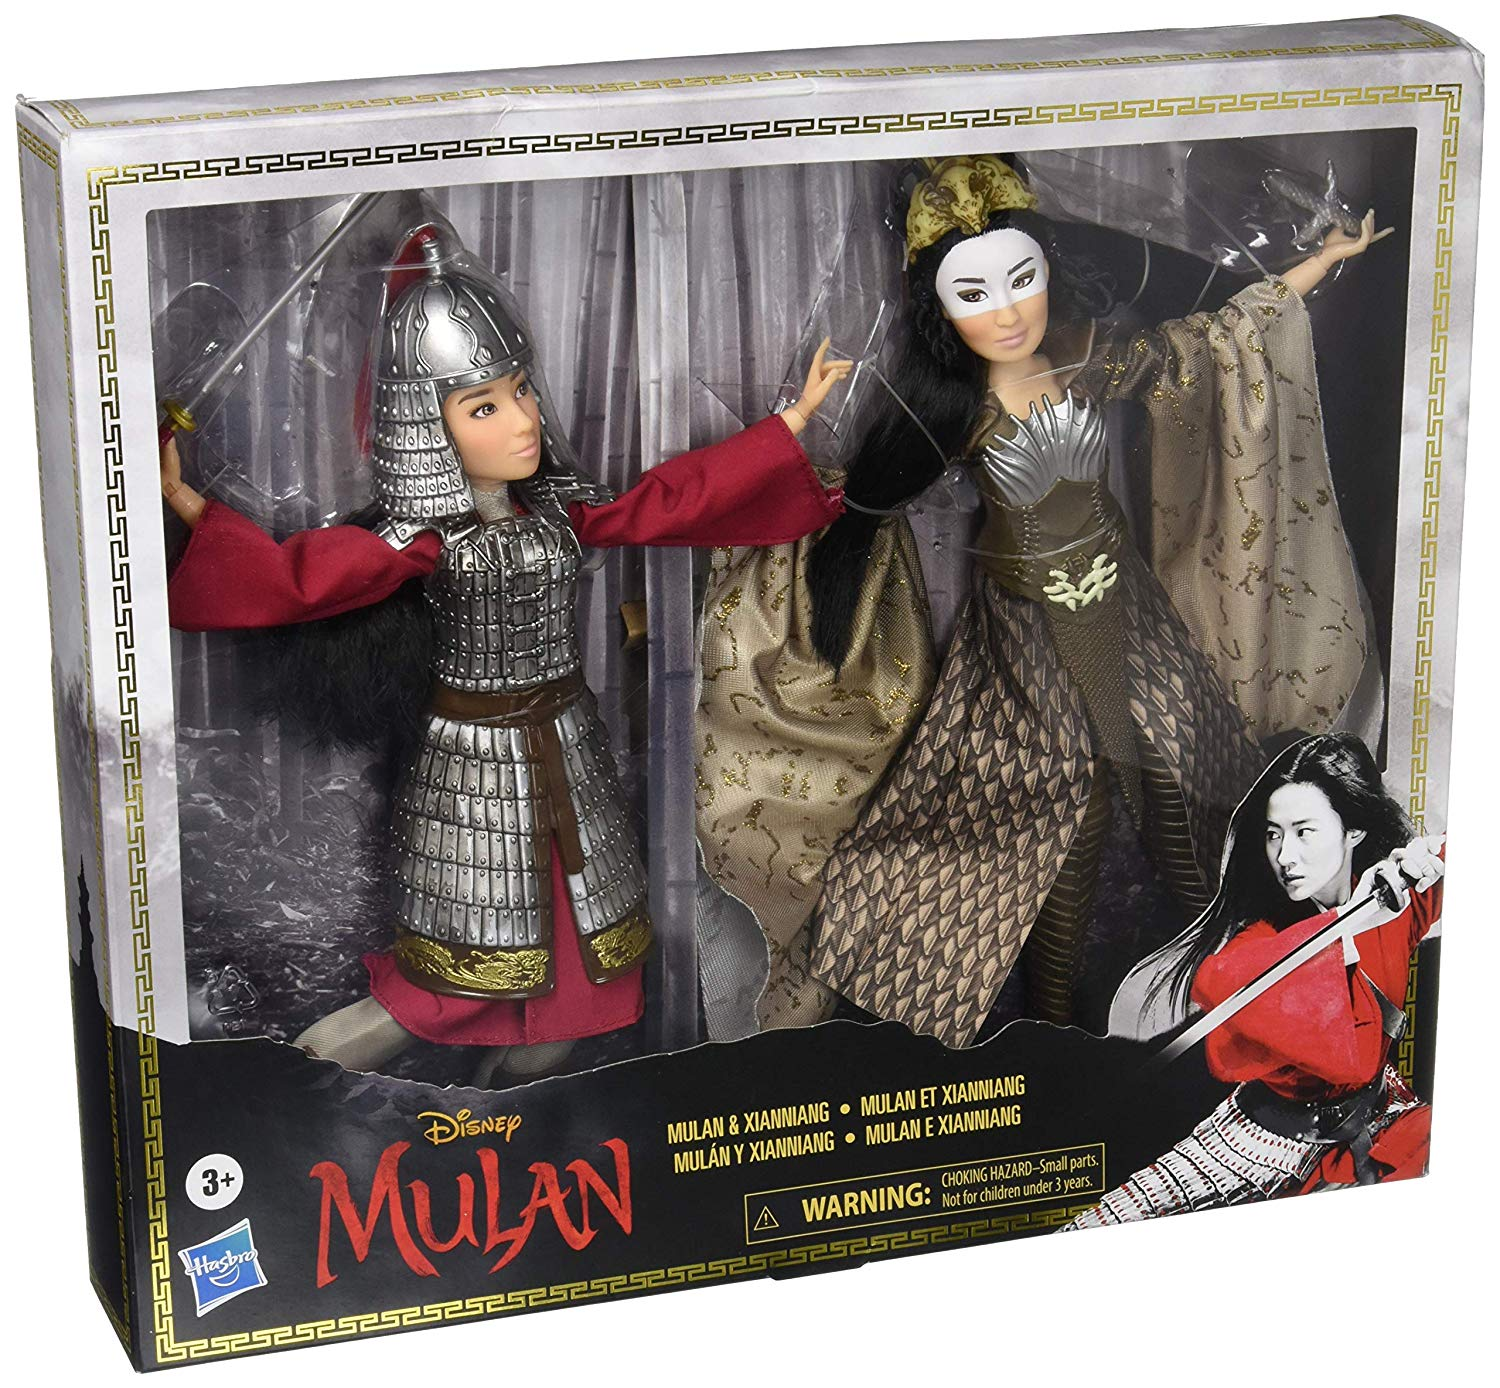 First Images Disney Mulan Live Action Movie 2020 Doll Set Mulan Xianniang From Hasbro Youloveit Com